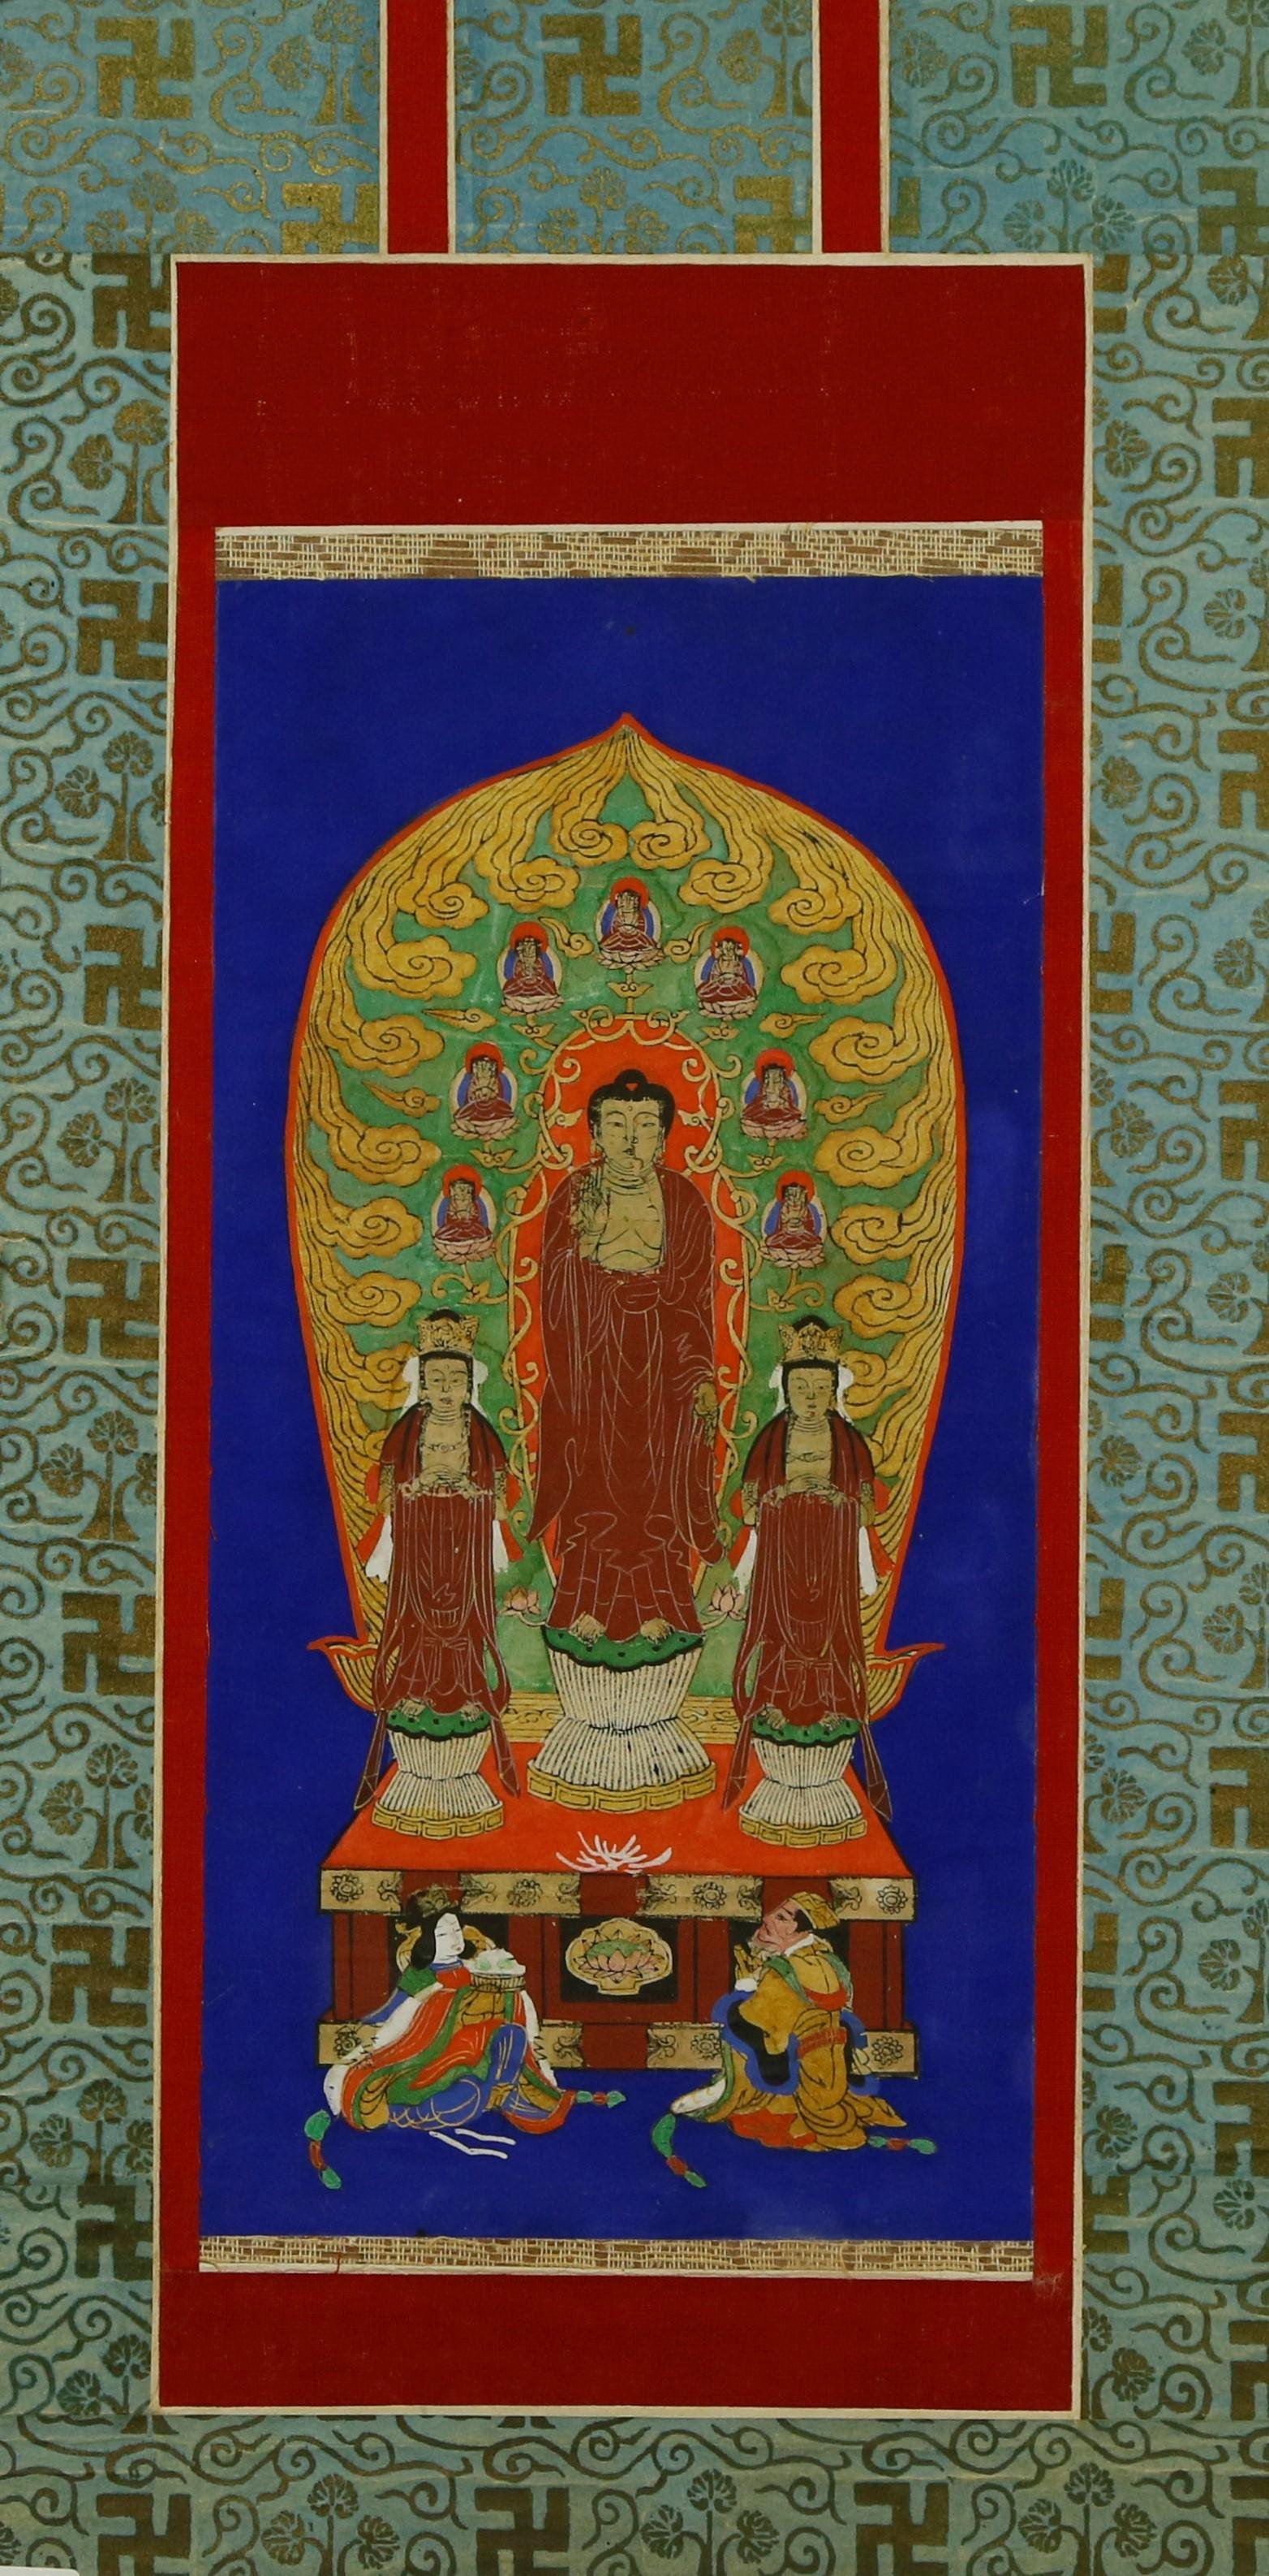 A Painting of Buddha